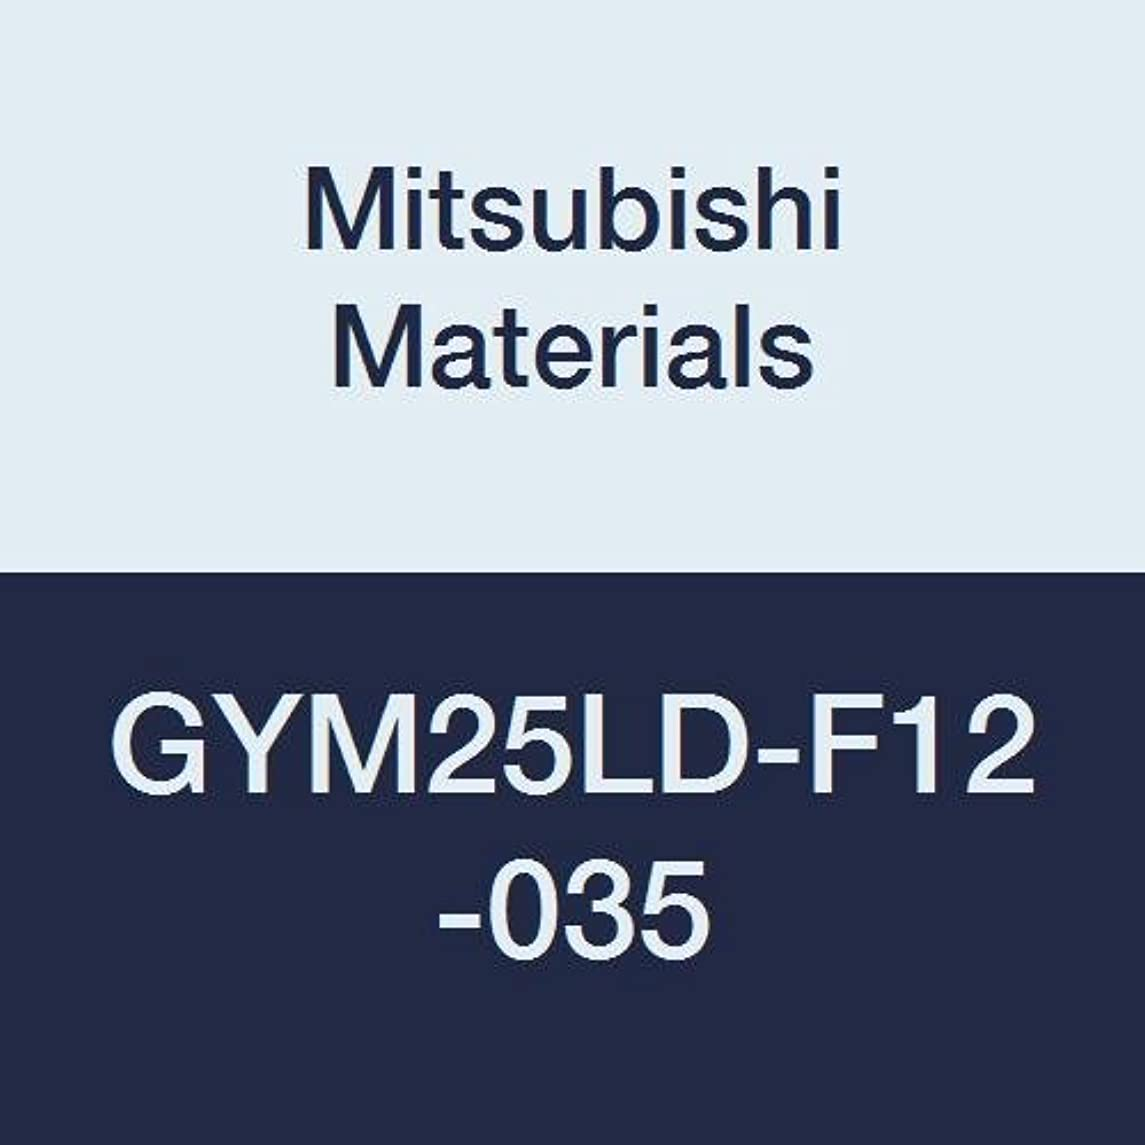 Mitsubishi Materials GYM25LD-F12-035 Face Grooving Holder, Modular Blade, M25 Size, Left Hand, 0.118